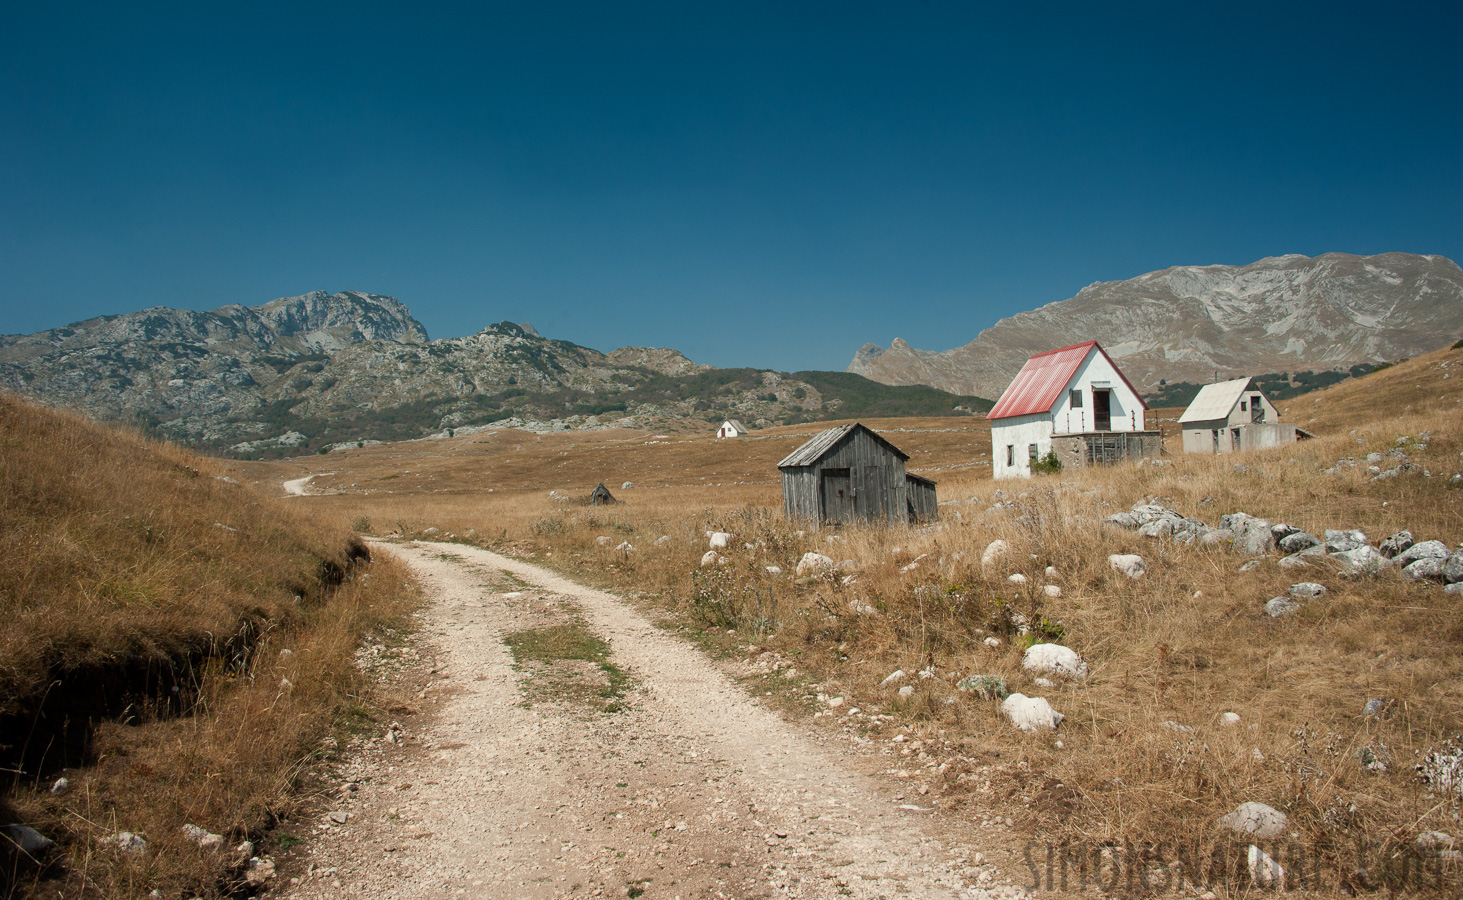 Montenegro - In the region of the Durmitor massif [28 mm, 1/250 sec at f / 13, ISO 400]